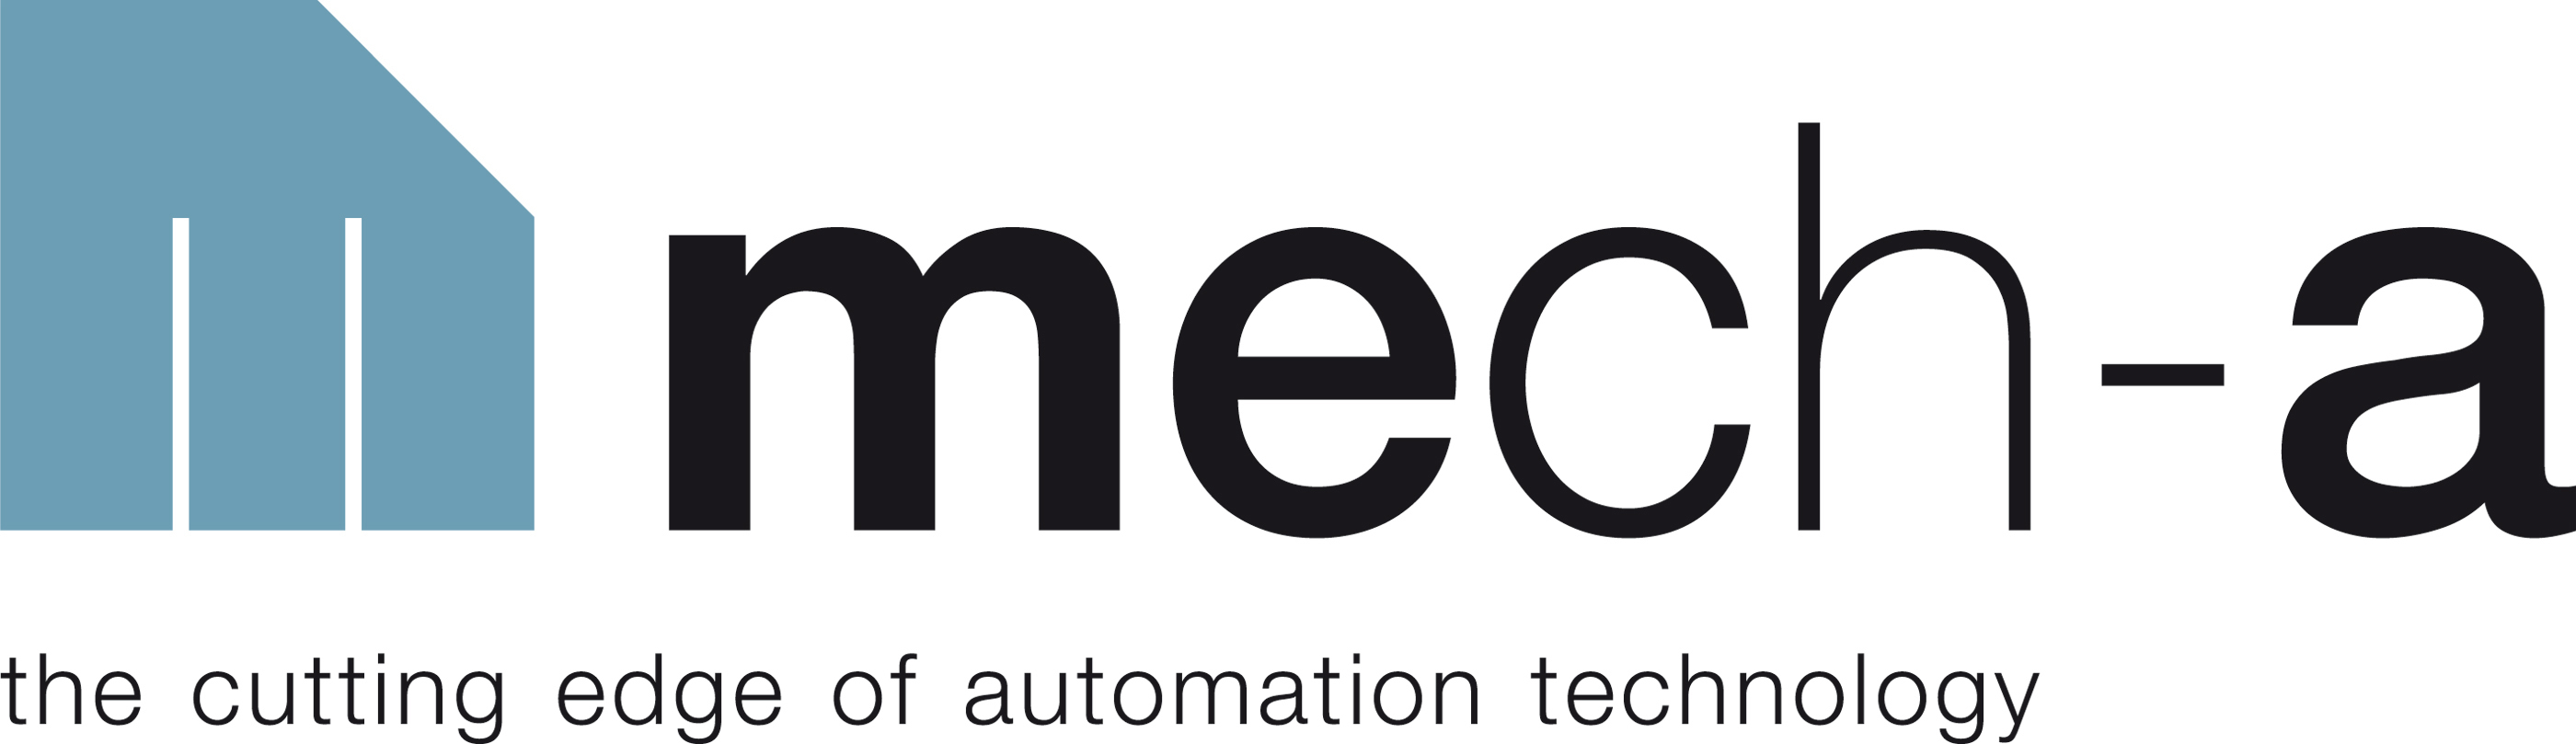 mech-a the cutting edge of automation technology